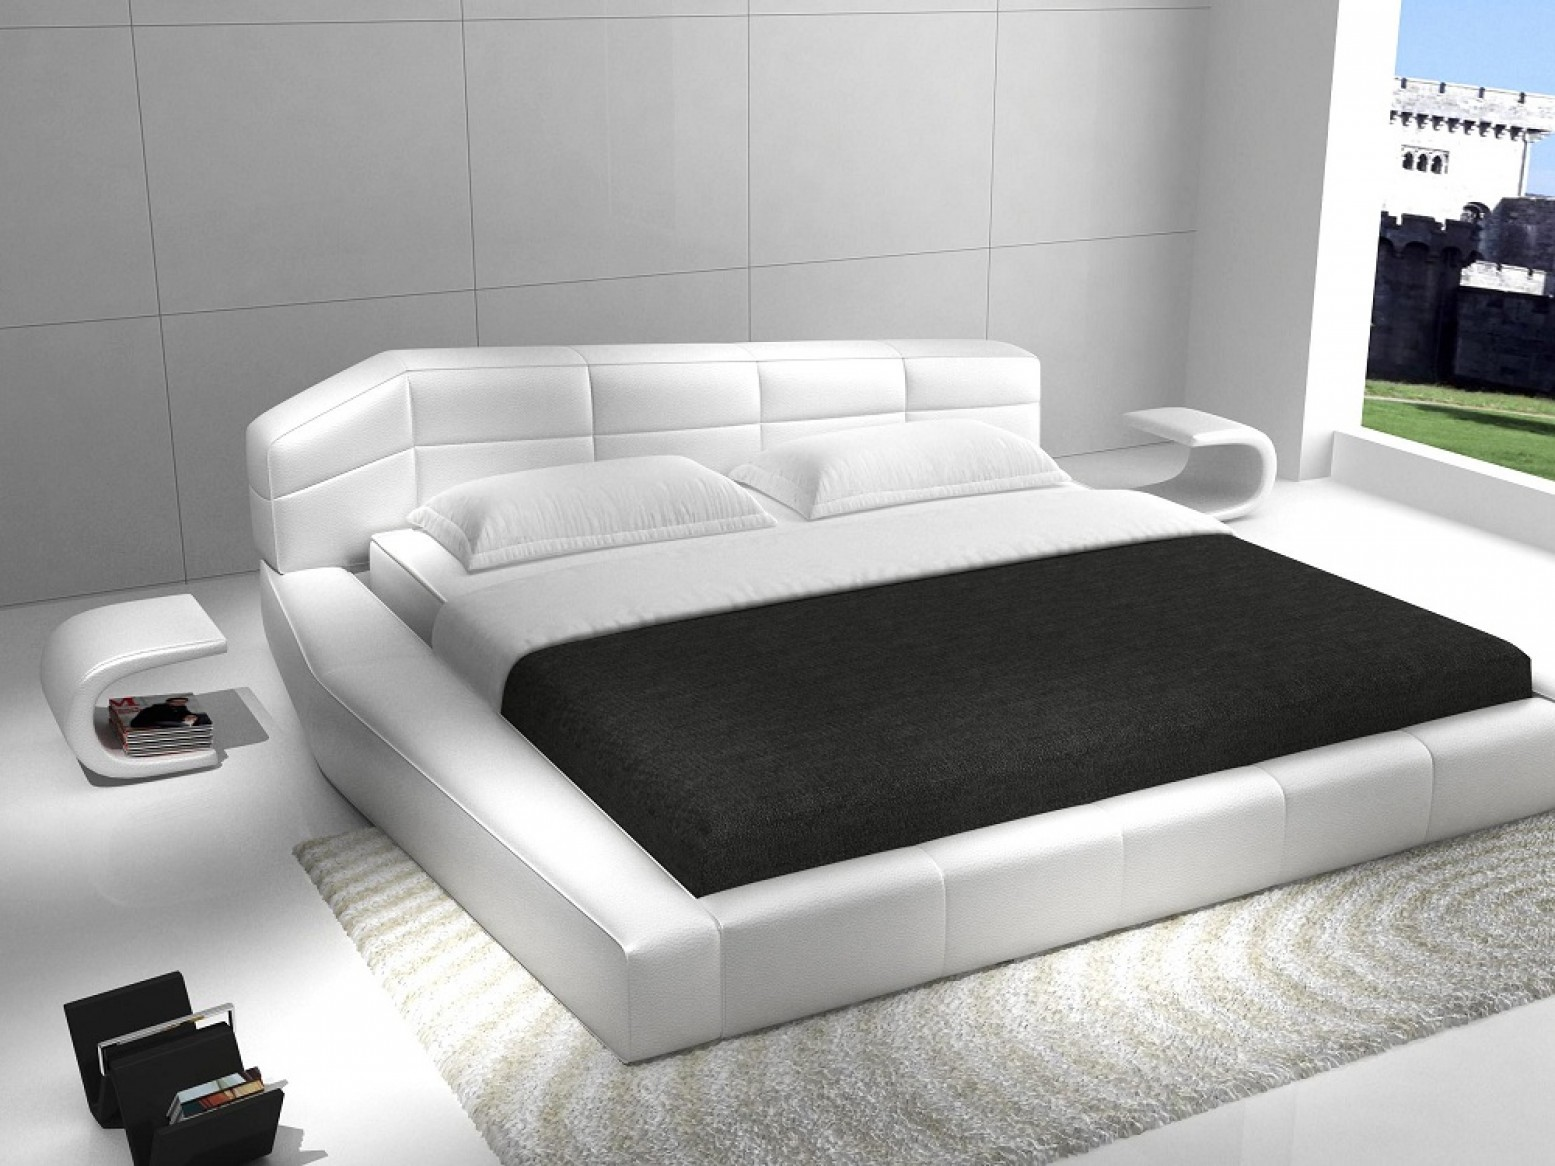 Picture of: Dream Queen Size Bed By J M Furniture